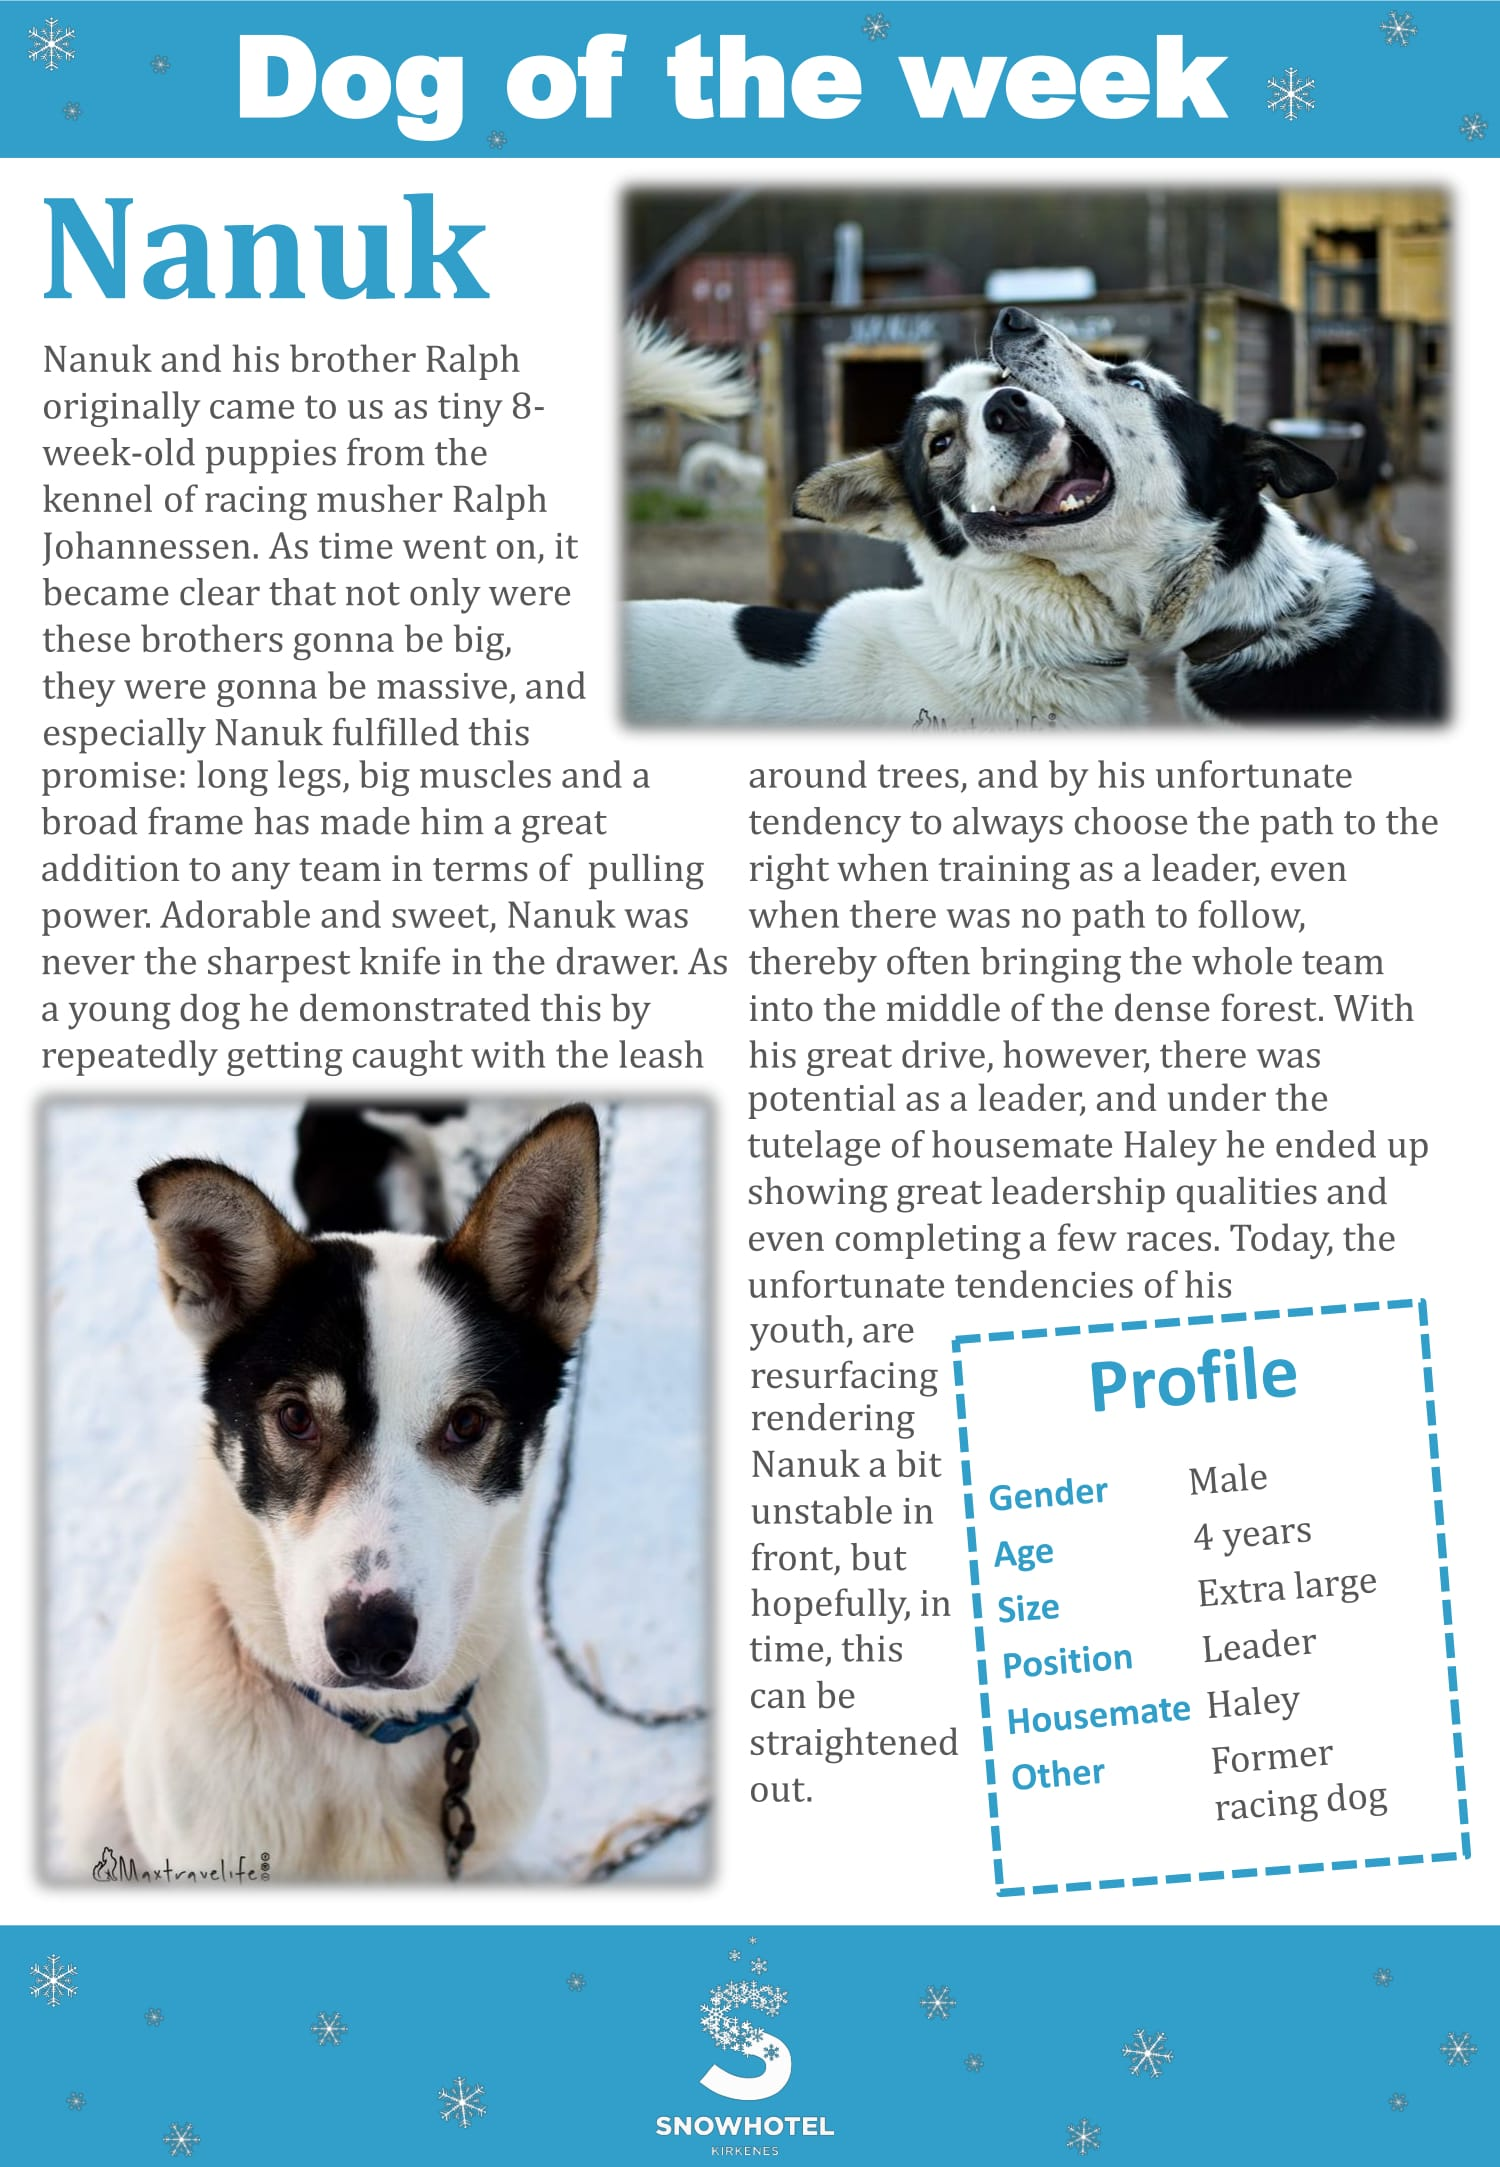 dog_of_the_week_Nanuk-1